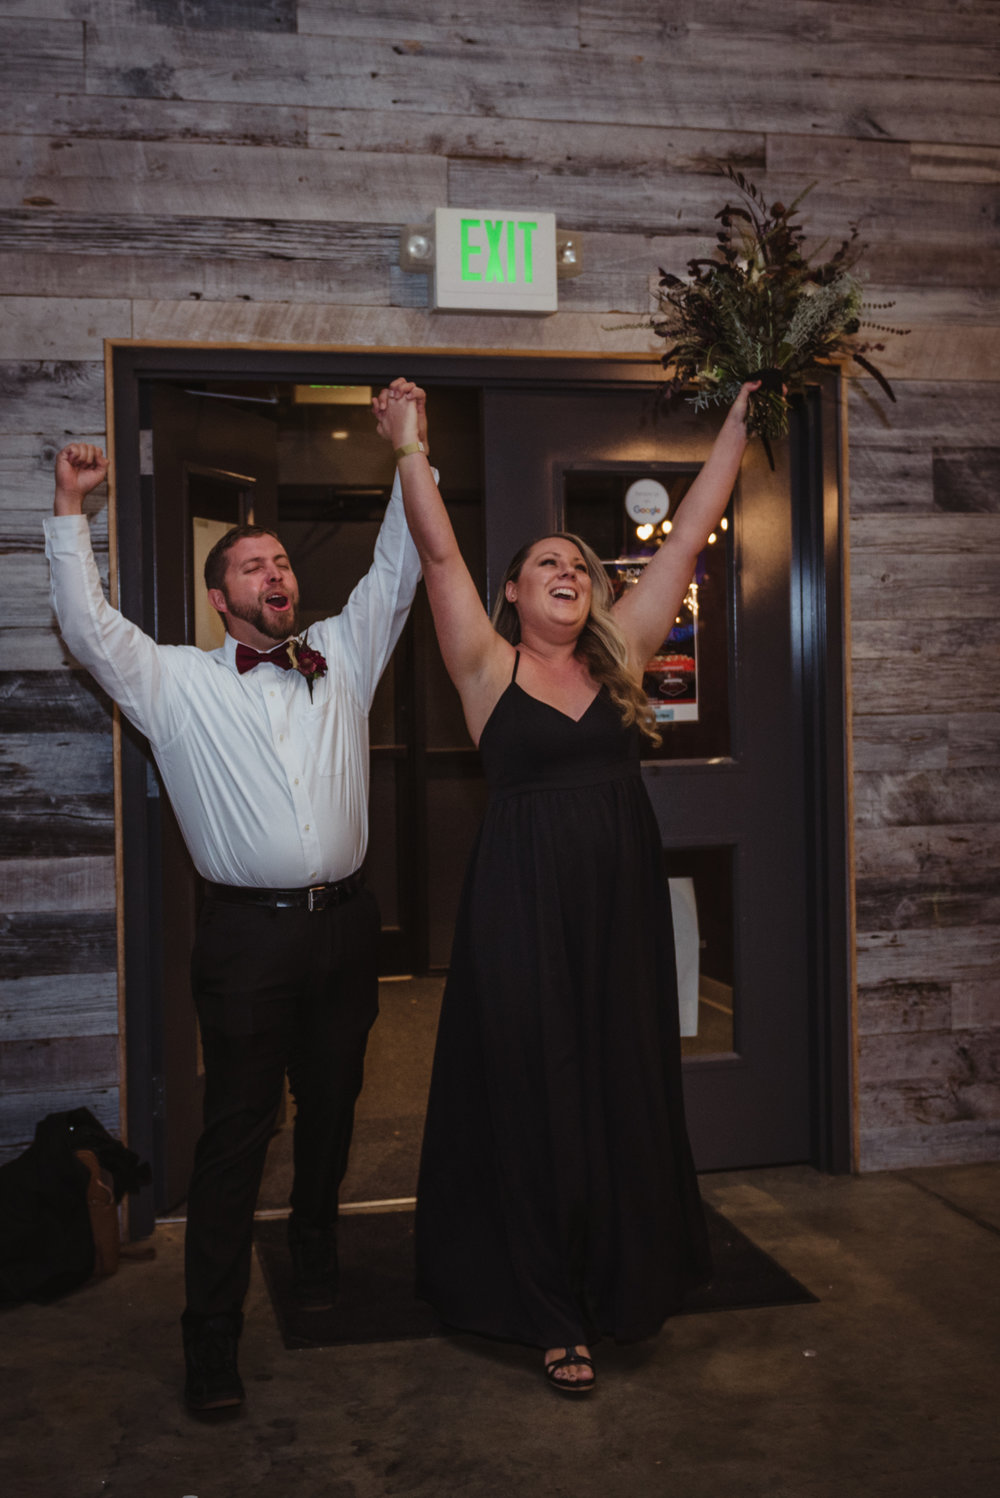 the-bride-and-groom-enter-the-reception-at-the-brewery-for-the-first-time.jpg